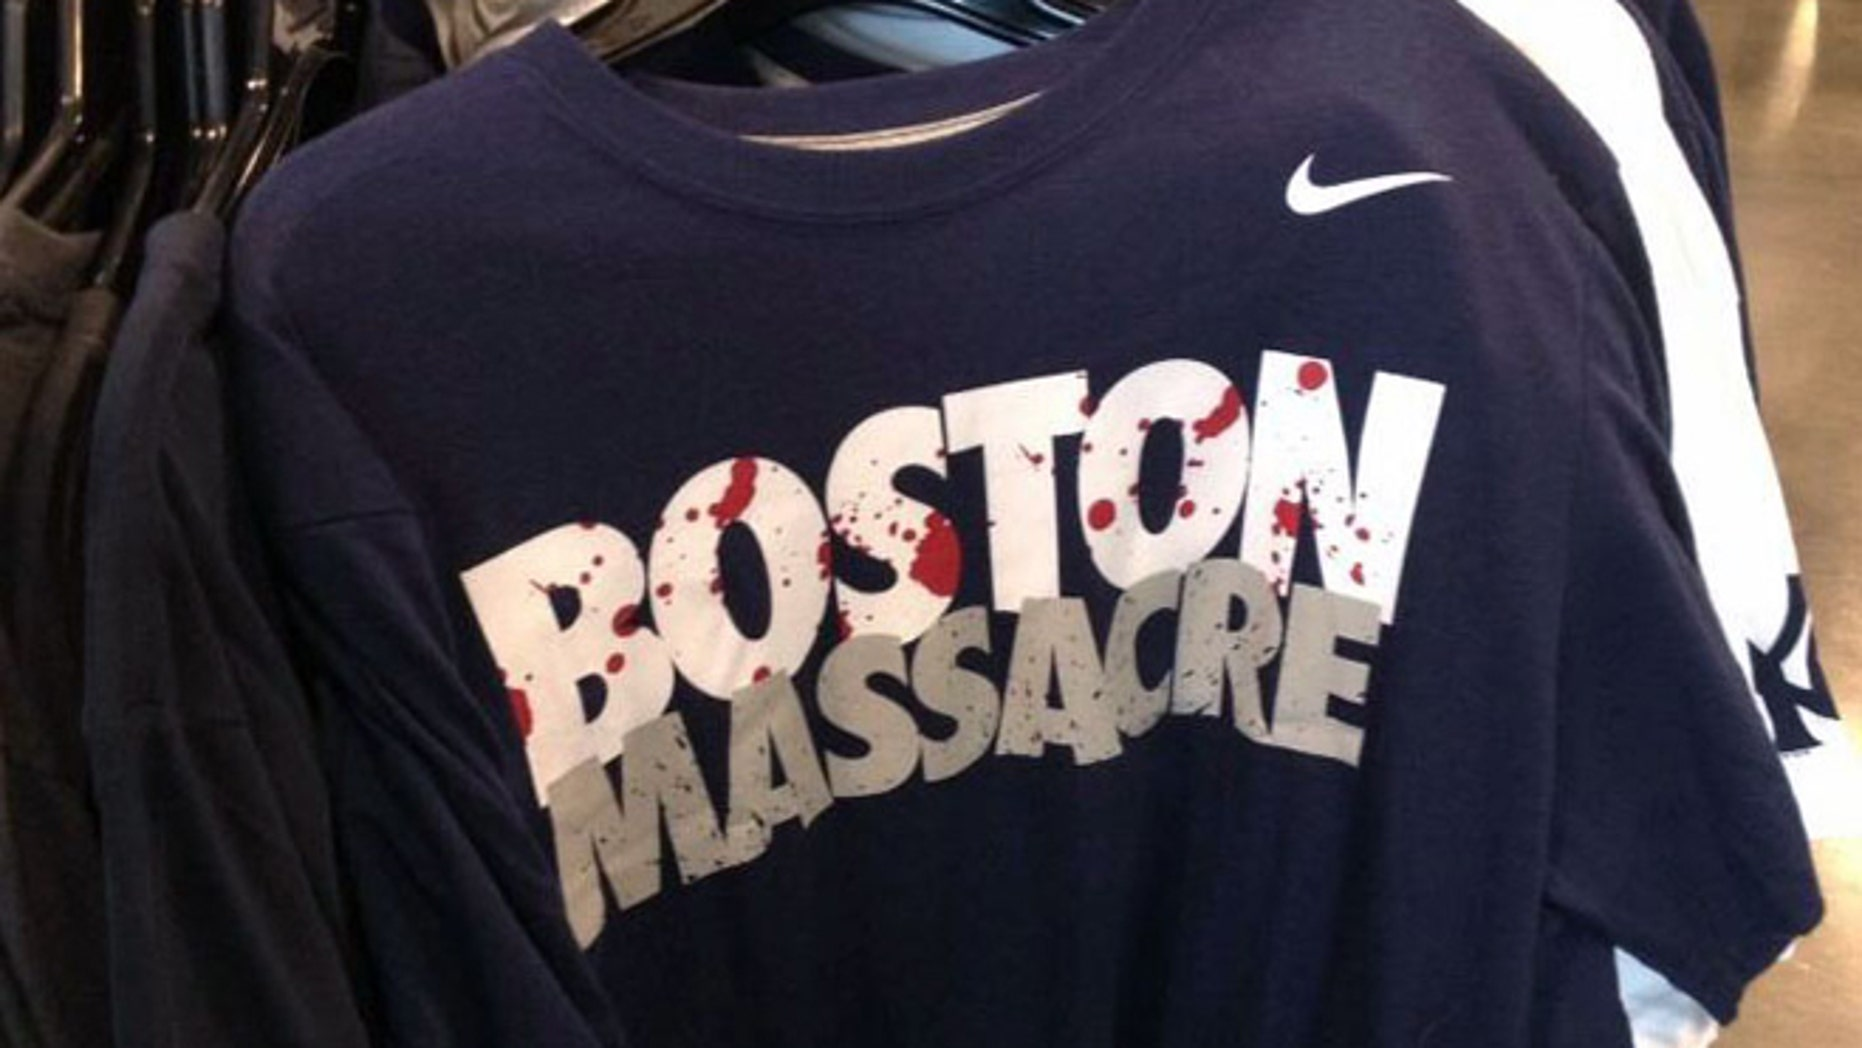 This undated  photo shows a Nike shirt for sale at a Nike Outlet.